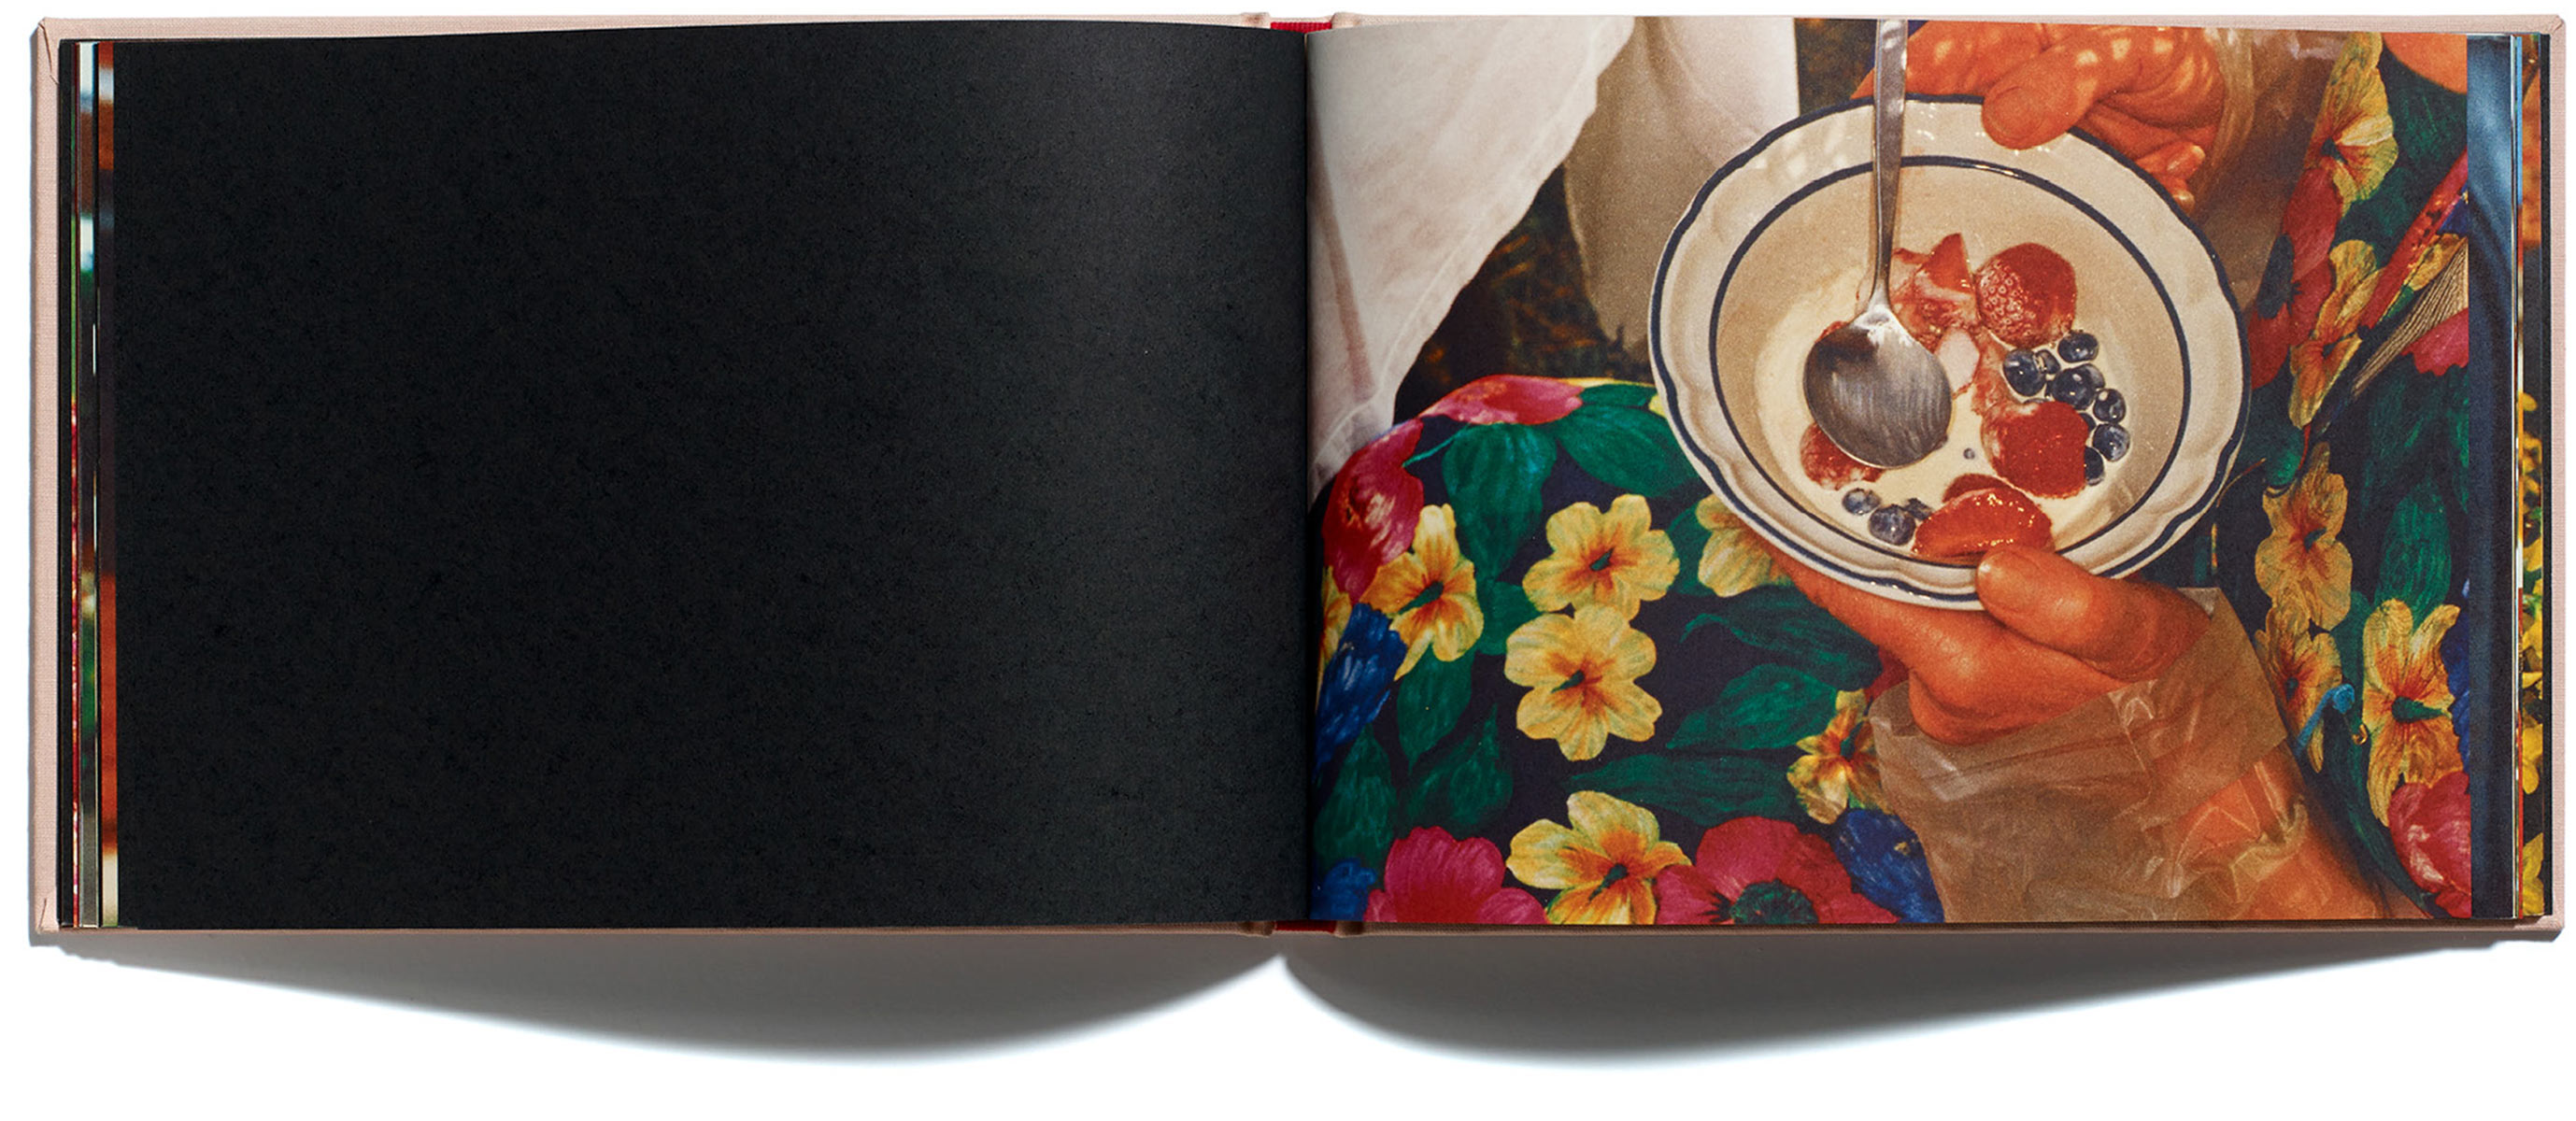 Martin Parr, Flowers, published by Browns Editions, designed by Browns Design book